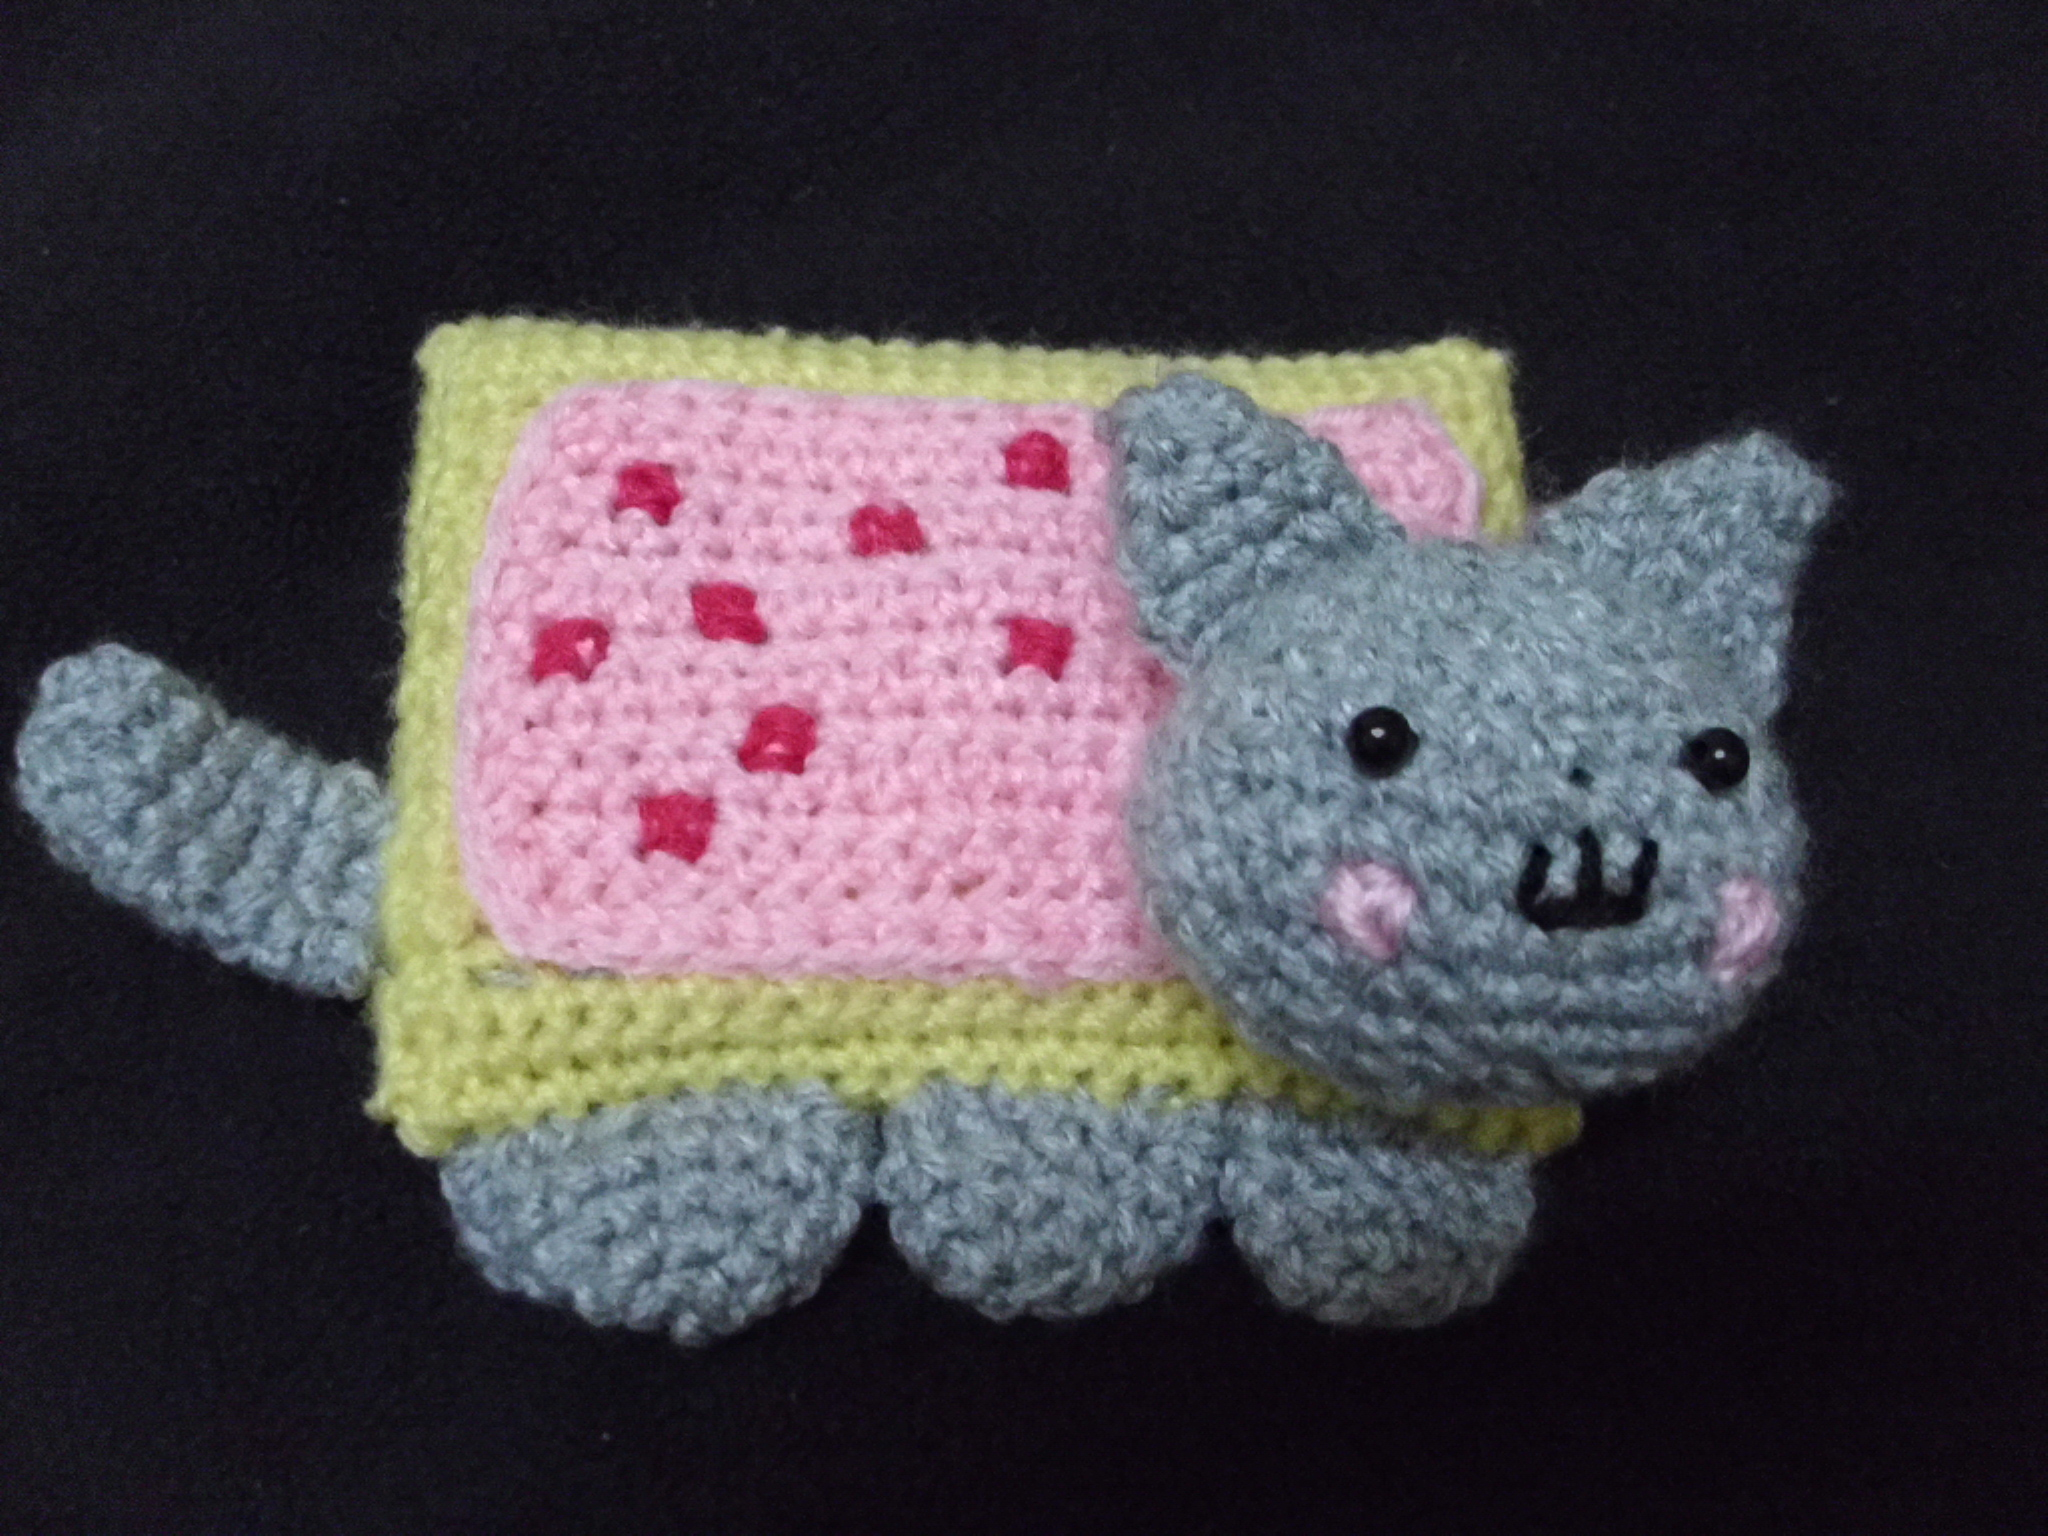 Nyan Cat crocheted purse by Lithiumcarbonat on DeviantArt | 1536x2048